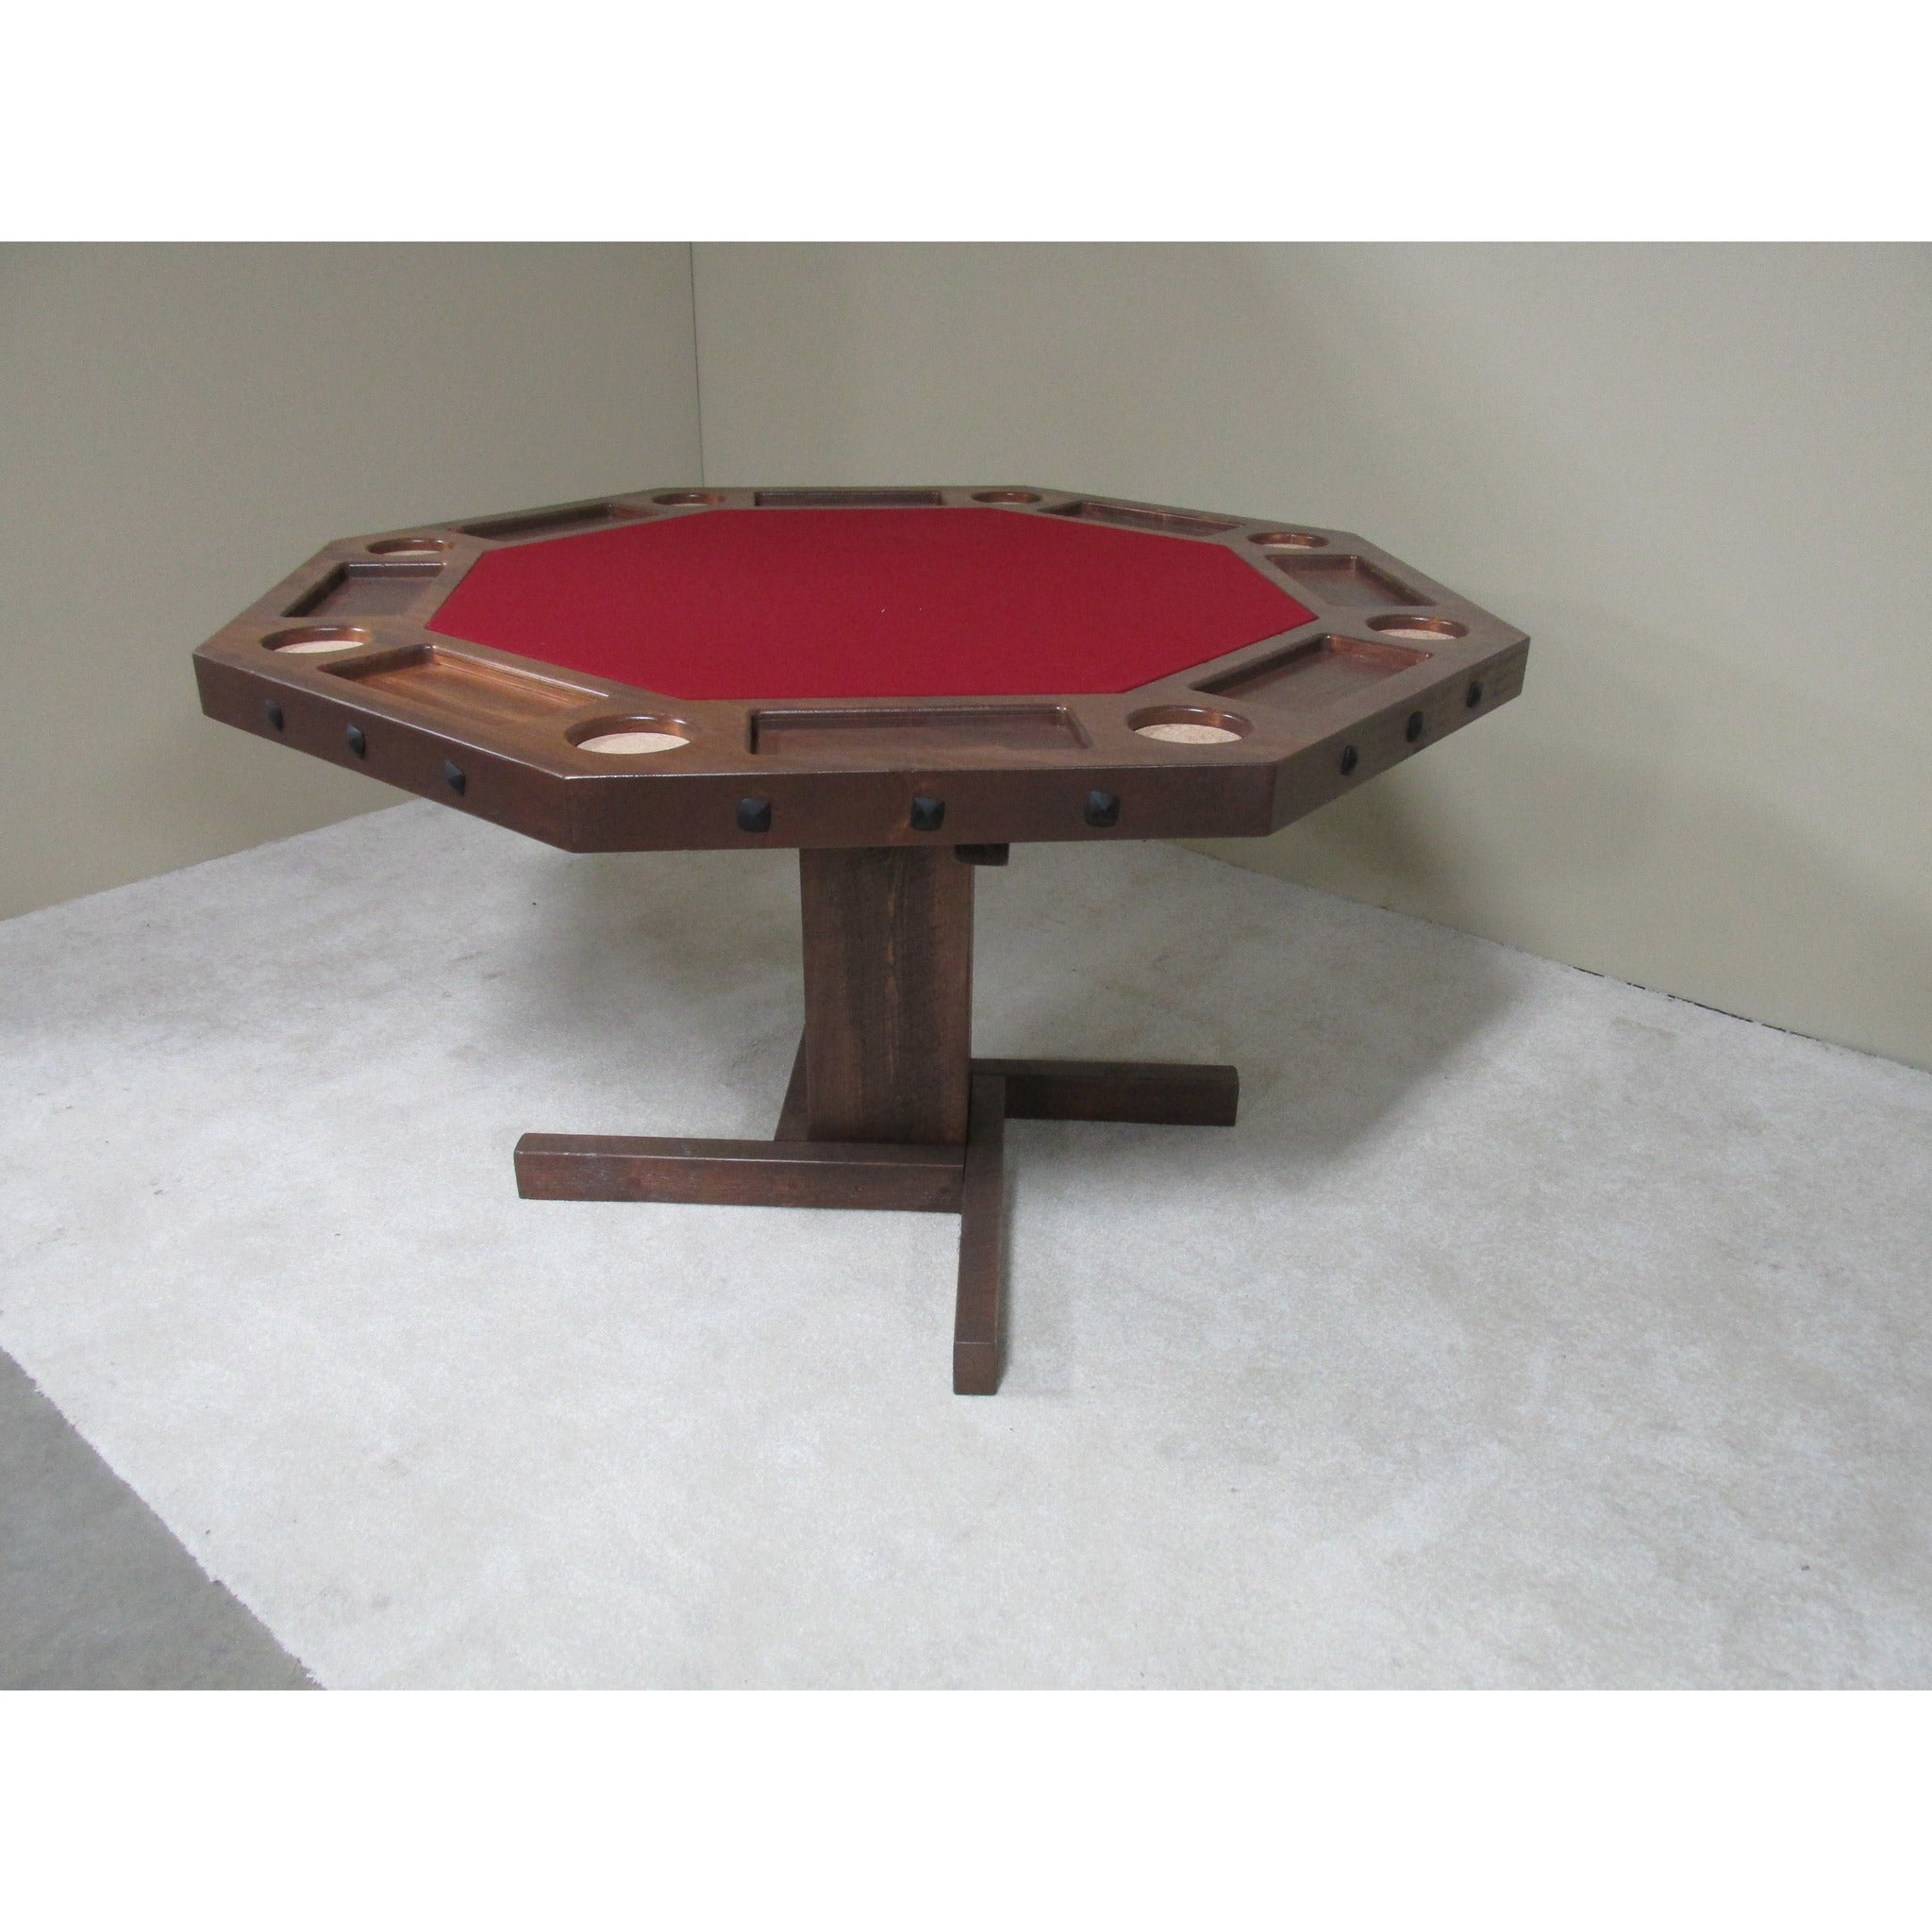 Convertible poker dining table serrengetti by darafeev for Table transformable